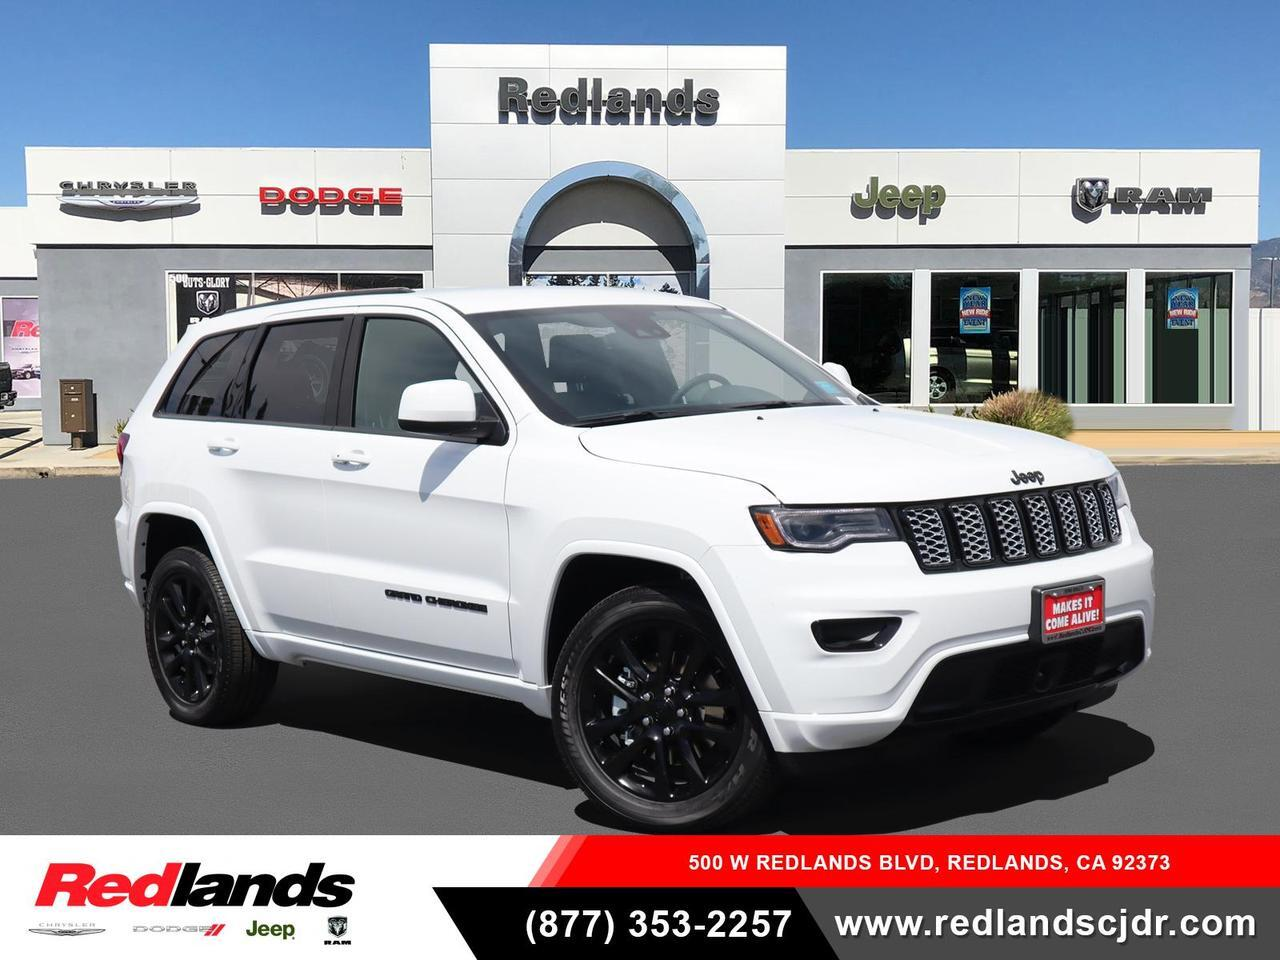 2021 Jeep Grand Cherokee LAREDO X 4X4 Redlands CA